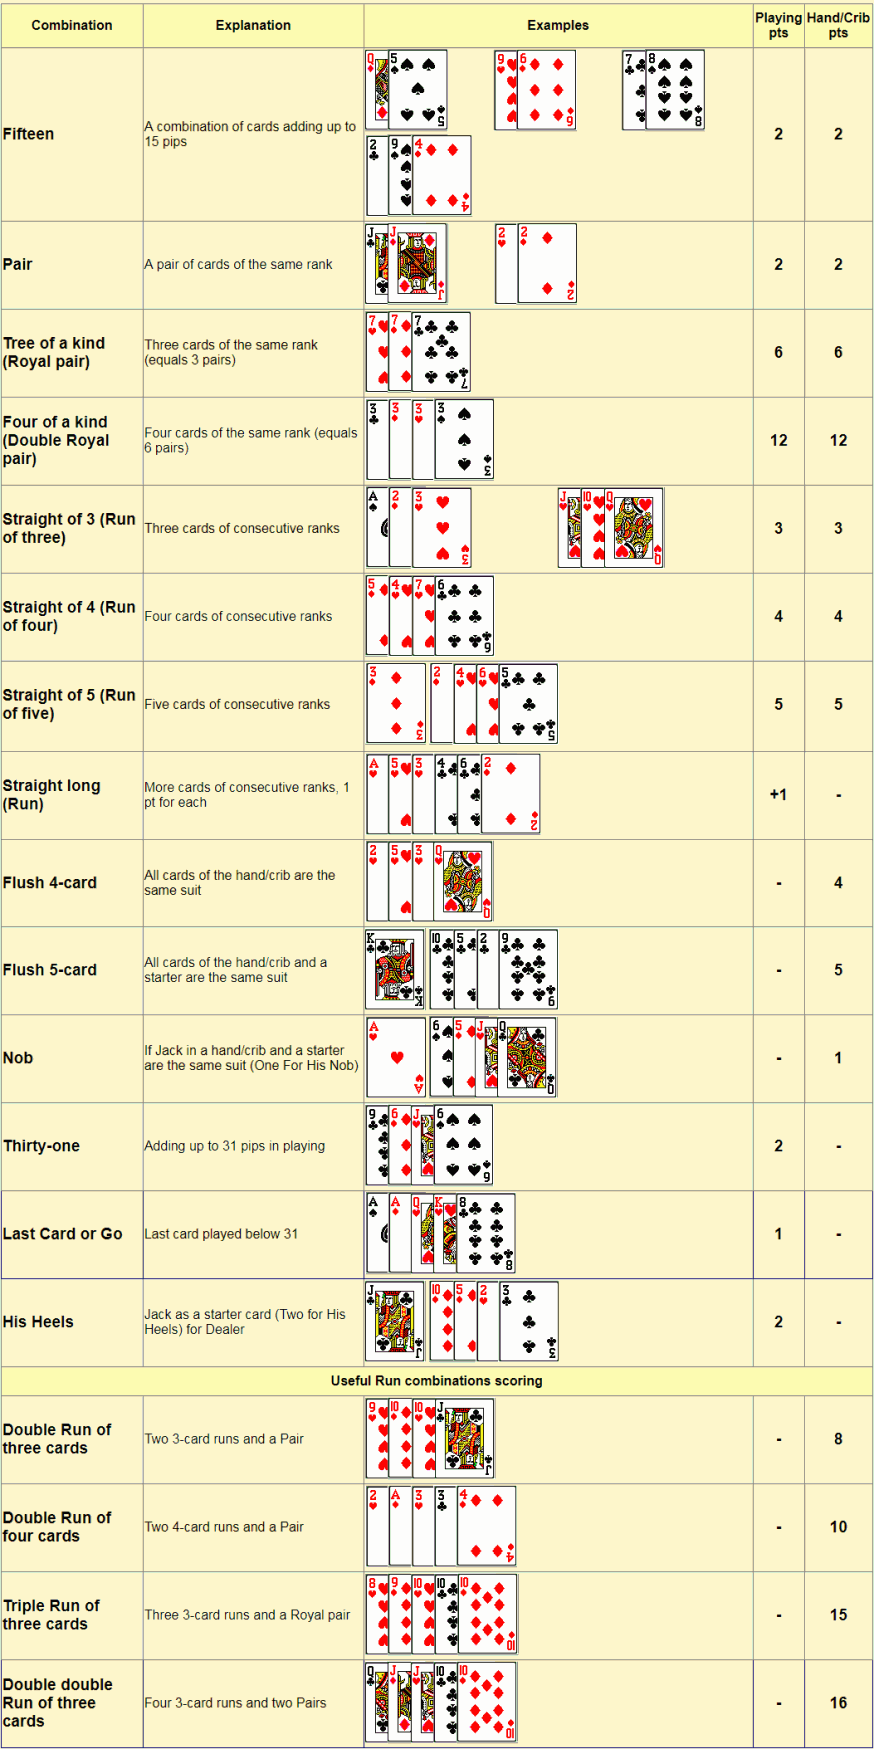 picture regarding Printable Cribbage Rules known as Cribbage scoring chart. Cribbage hand rating and engage in rating